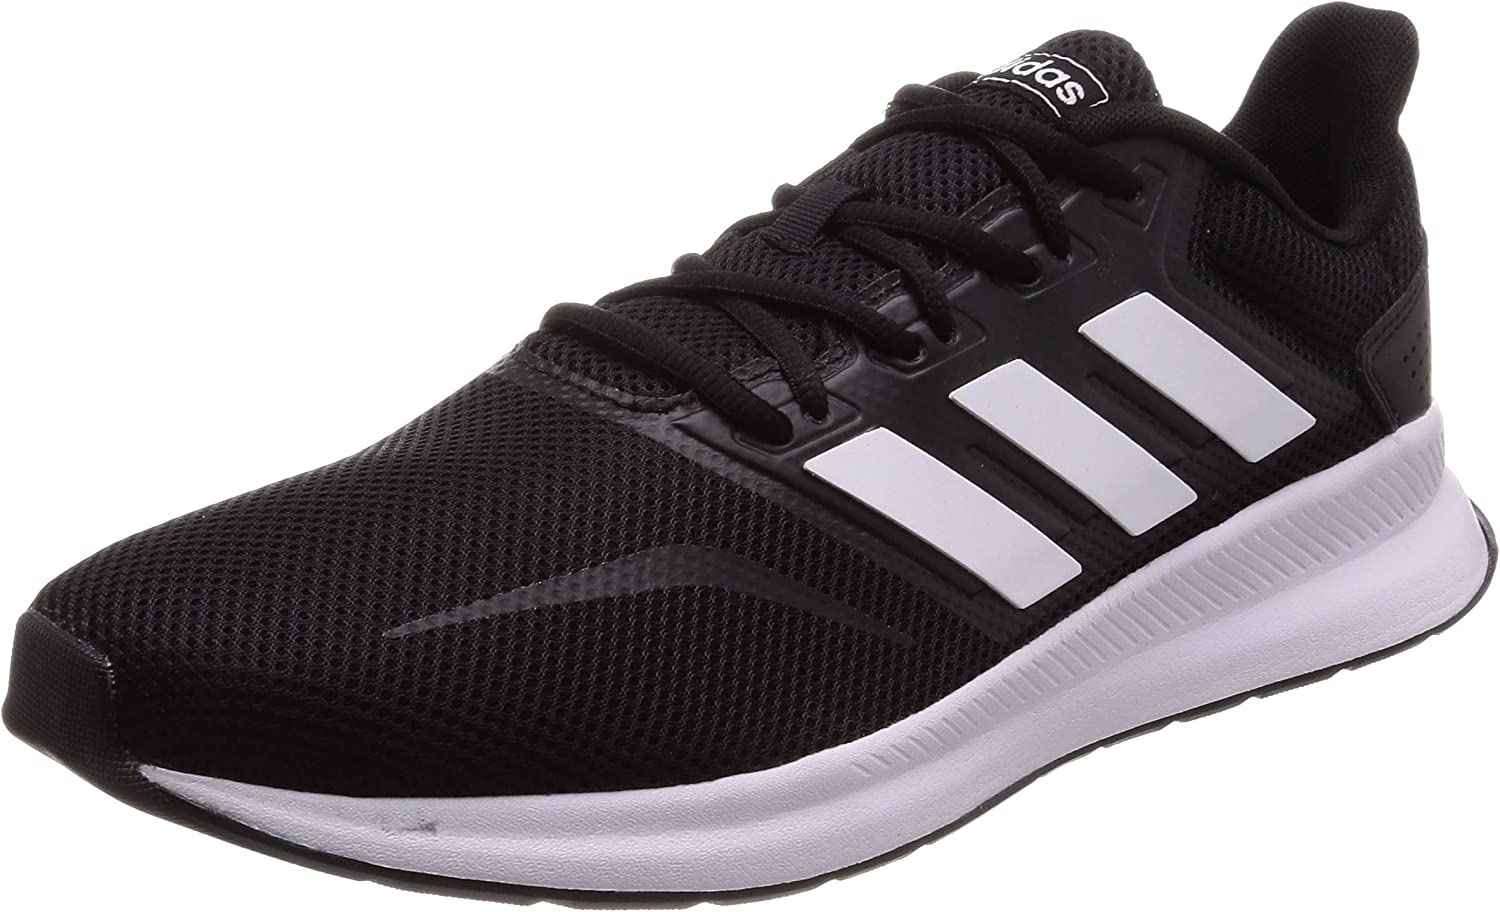 Adidas Falcon, Zapatillas de Trail Running para Hombre: Amazon.es ...